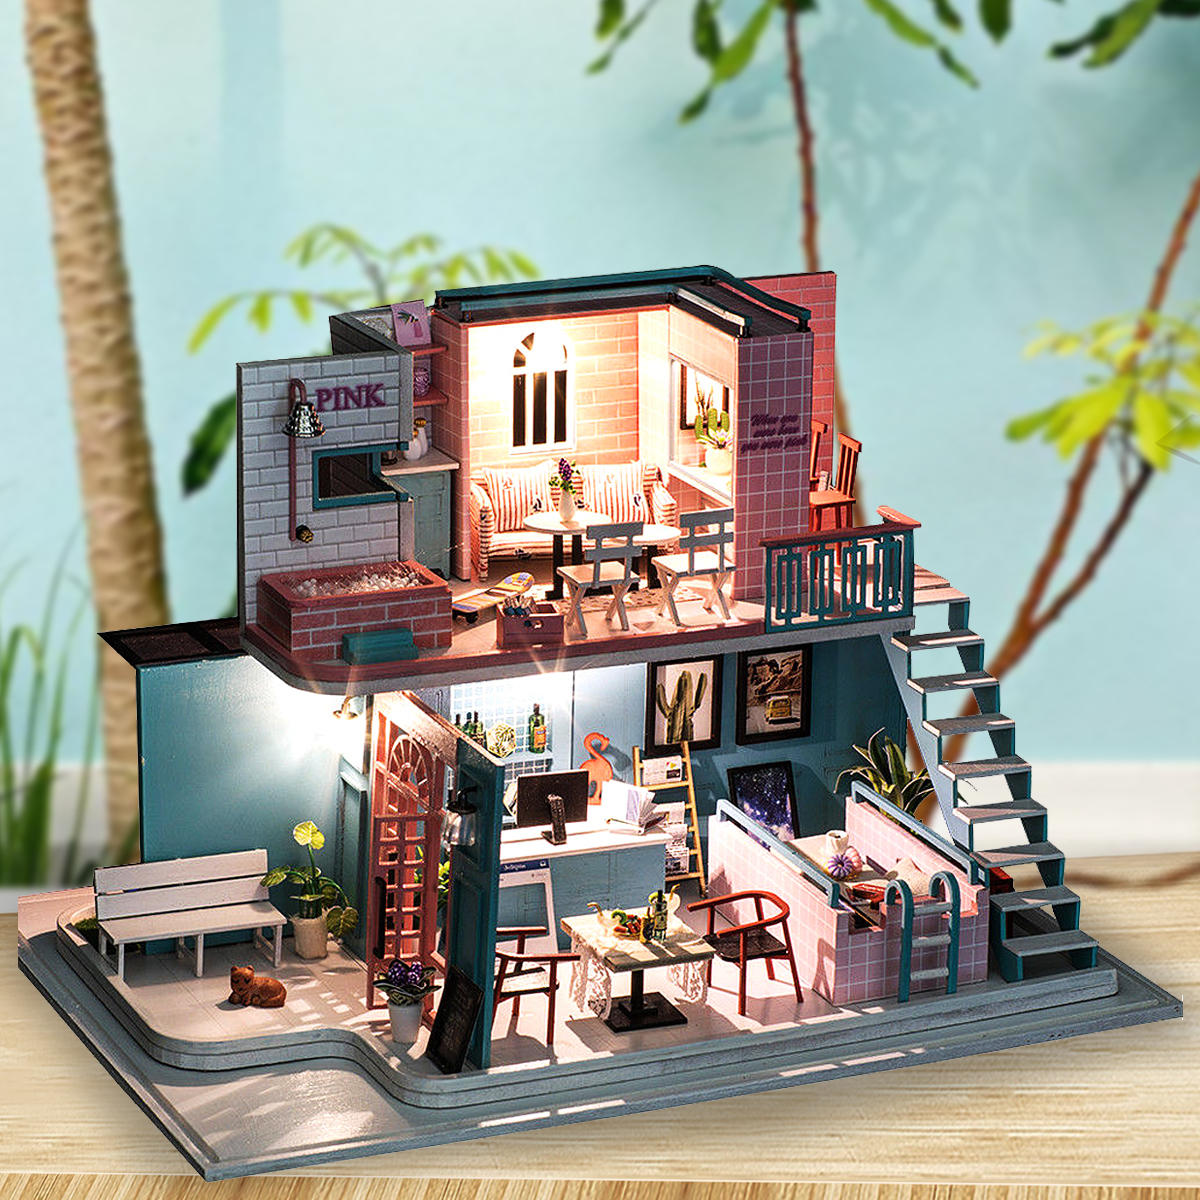 Wondrous Handmade 3D Wooden Miniatures Doll House Pink Cafe Dollhouse Furniture Diy Miniature Toys For Girls Birthday Gifts Download Free Architecture Designs Ferenbritishbridgeorg